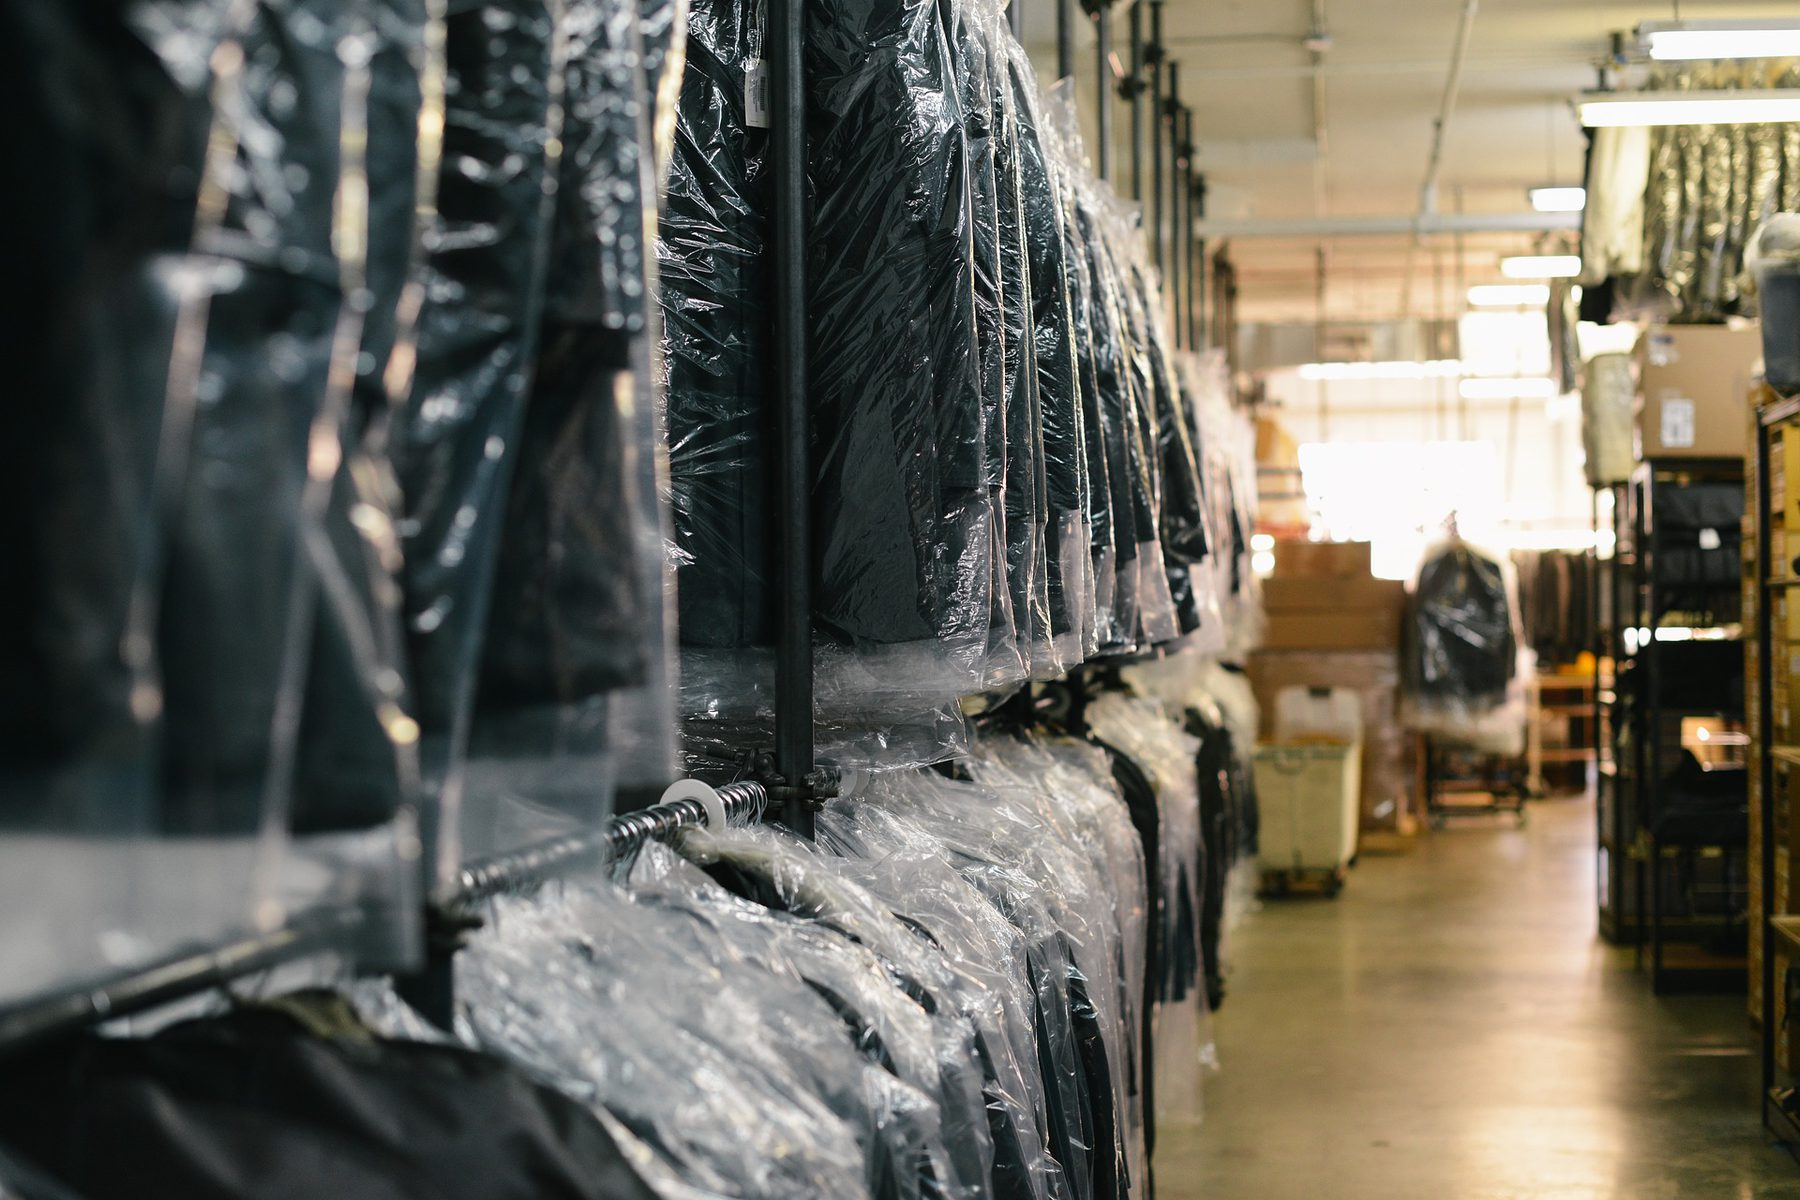 Job Role Image (Warehouse Manager: Clothing Stock in Warehouse)